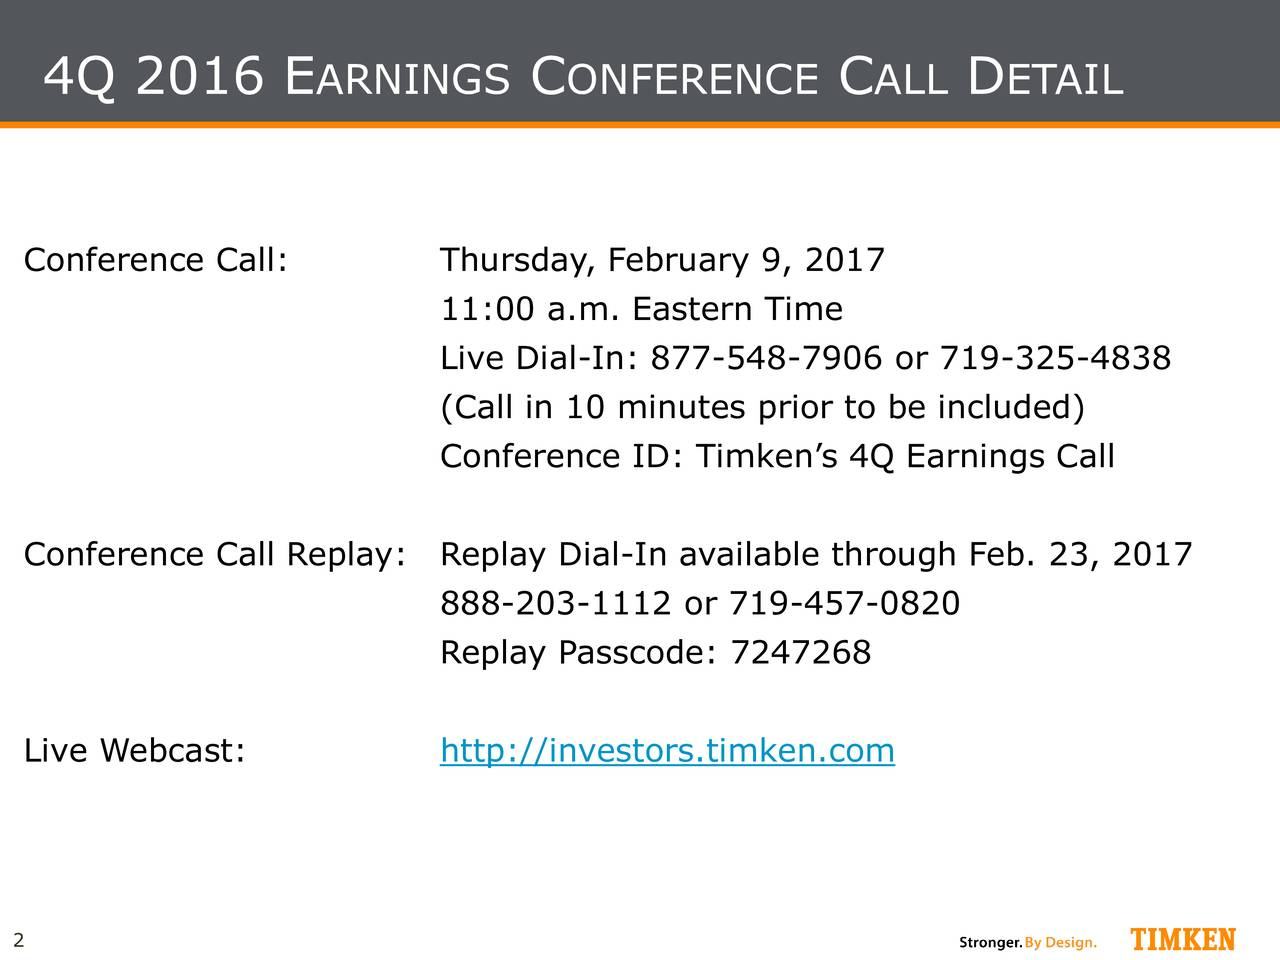 Conference Call: Thursday, February 9, 2017 11:00 a.m. Eastern Time Live Dial-In: 877-548-7906 or 719-325-4838 (Call in 10 minutes prior to be included) Conference ID: Timkens 4Q Earnings Call Conference Call ReplReplay Dial-In available through Feb. 23, 2017 888-203-1112 or 719-457-0820 Replay Passcode: 7247268 Live Webcast: http://investors.timken.com